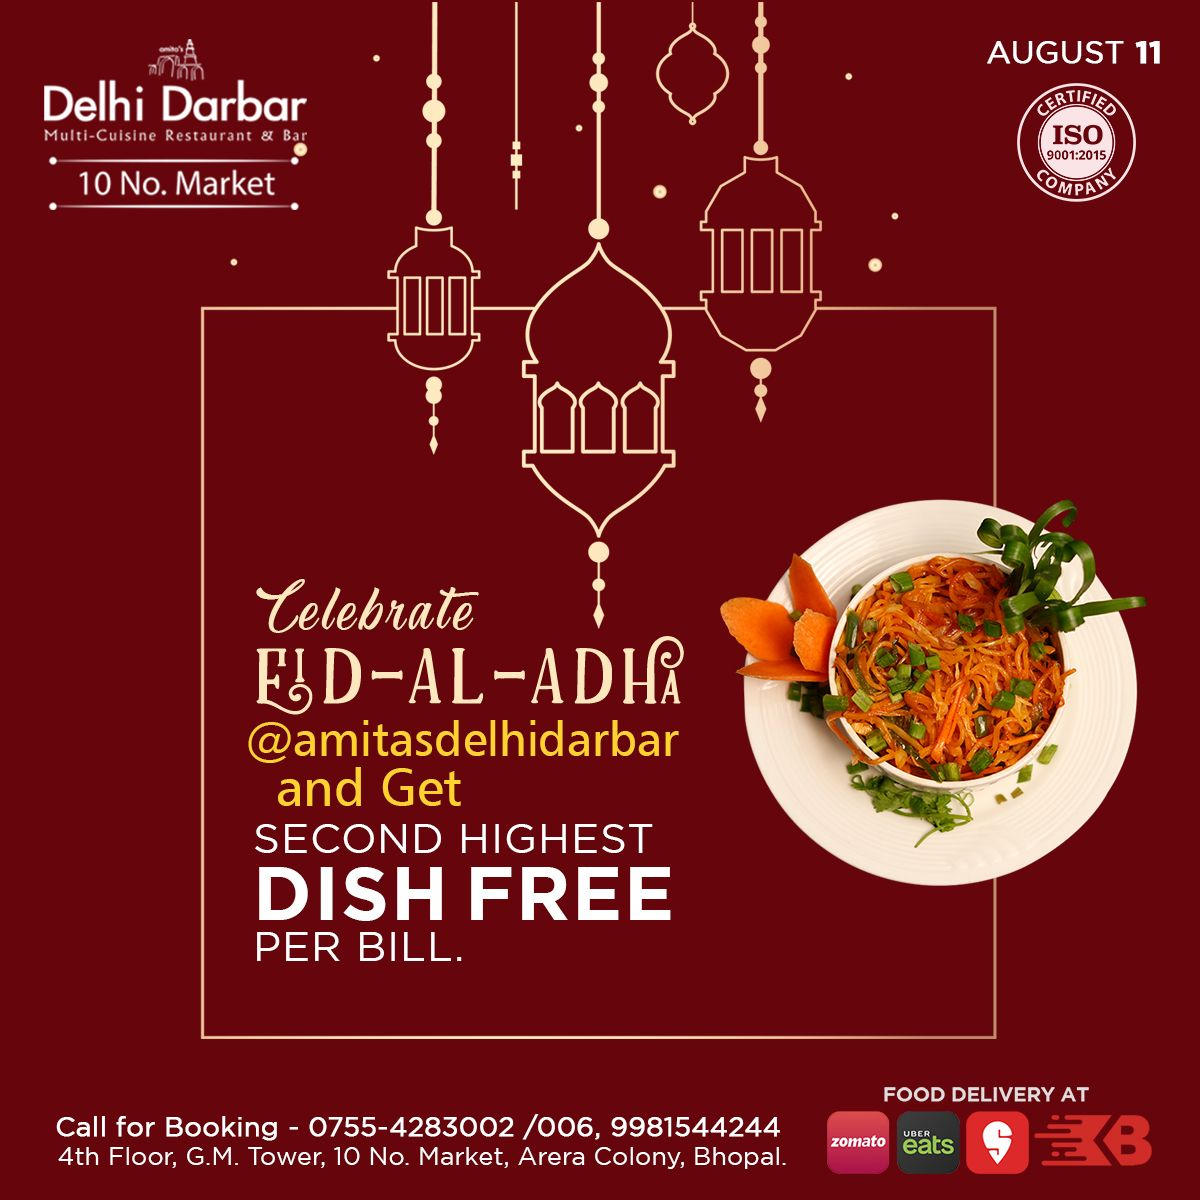 Celebrate This Eid Al Adha At Amitas Delhi Darbar And Get Second Highest Dish Free Per Bill Dishes Foodie Food Delivery